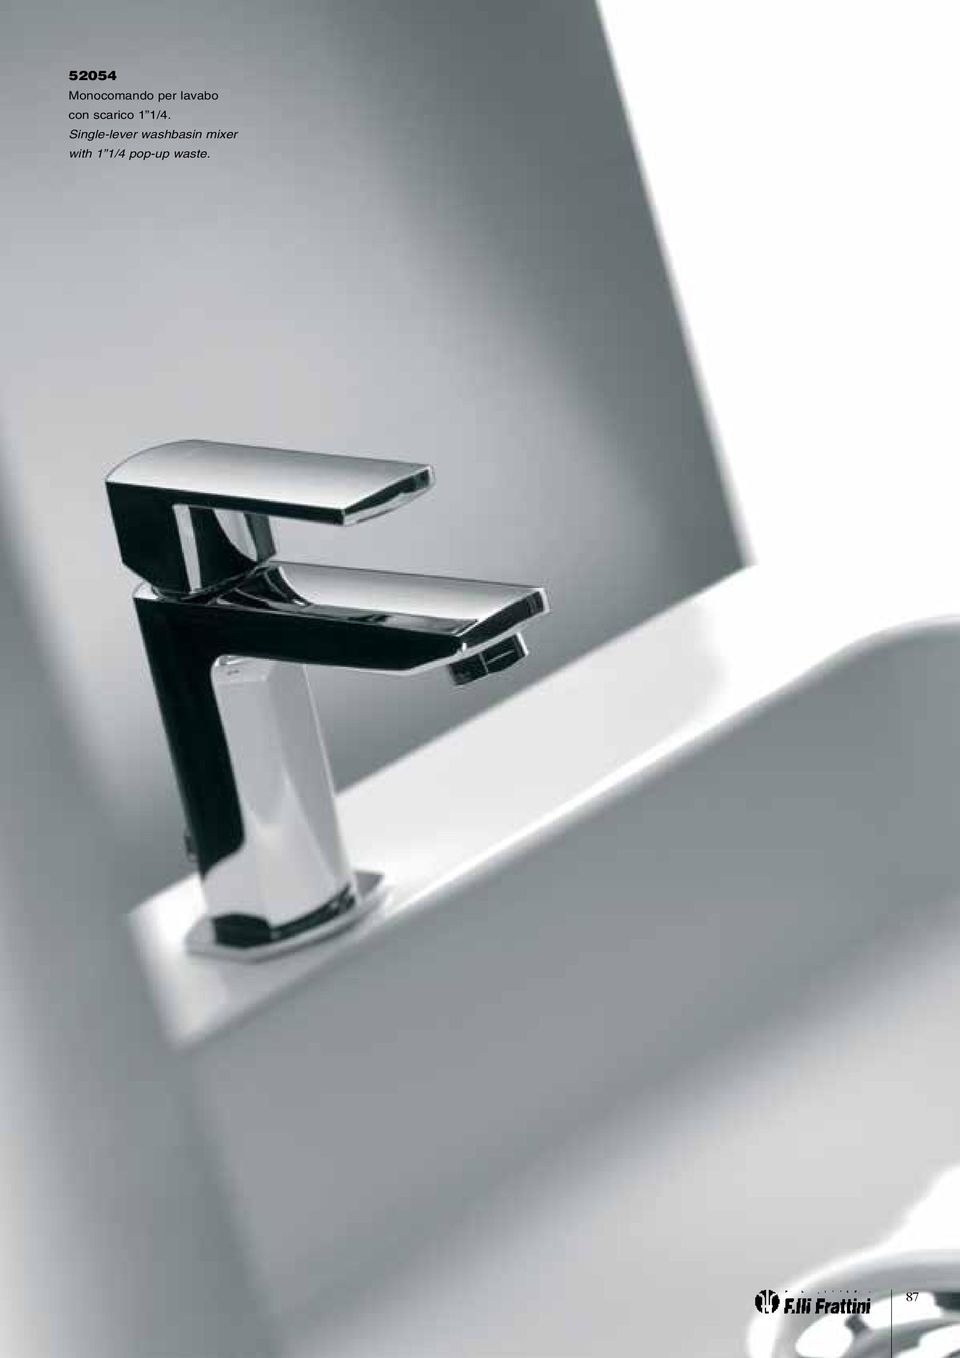 Single-lever washbasin